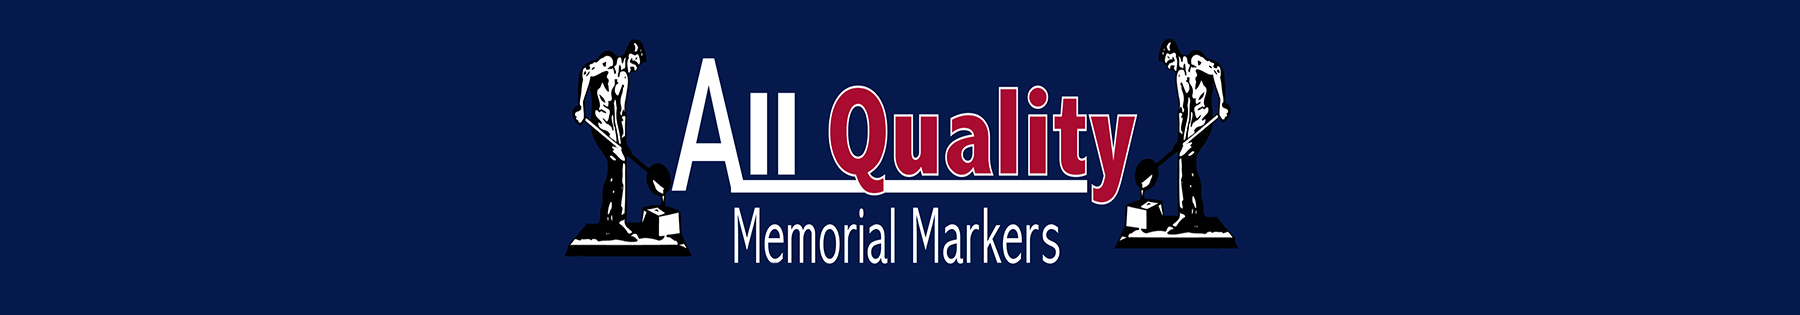 All Quality Memorial Markers